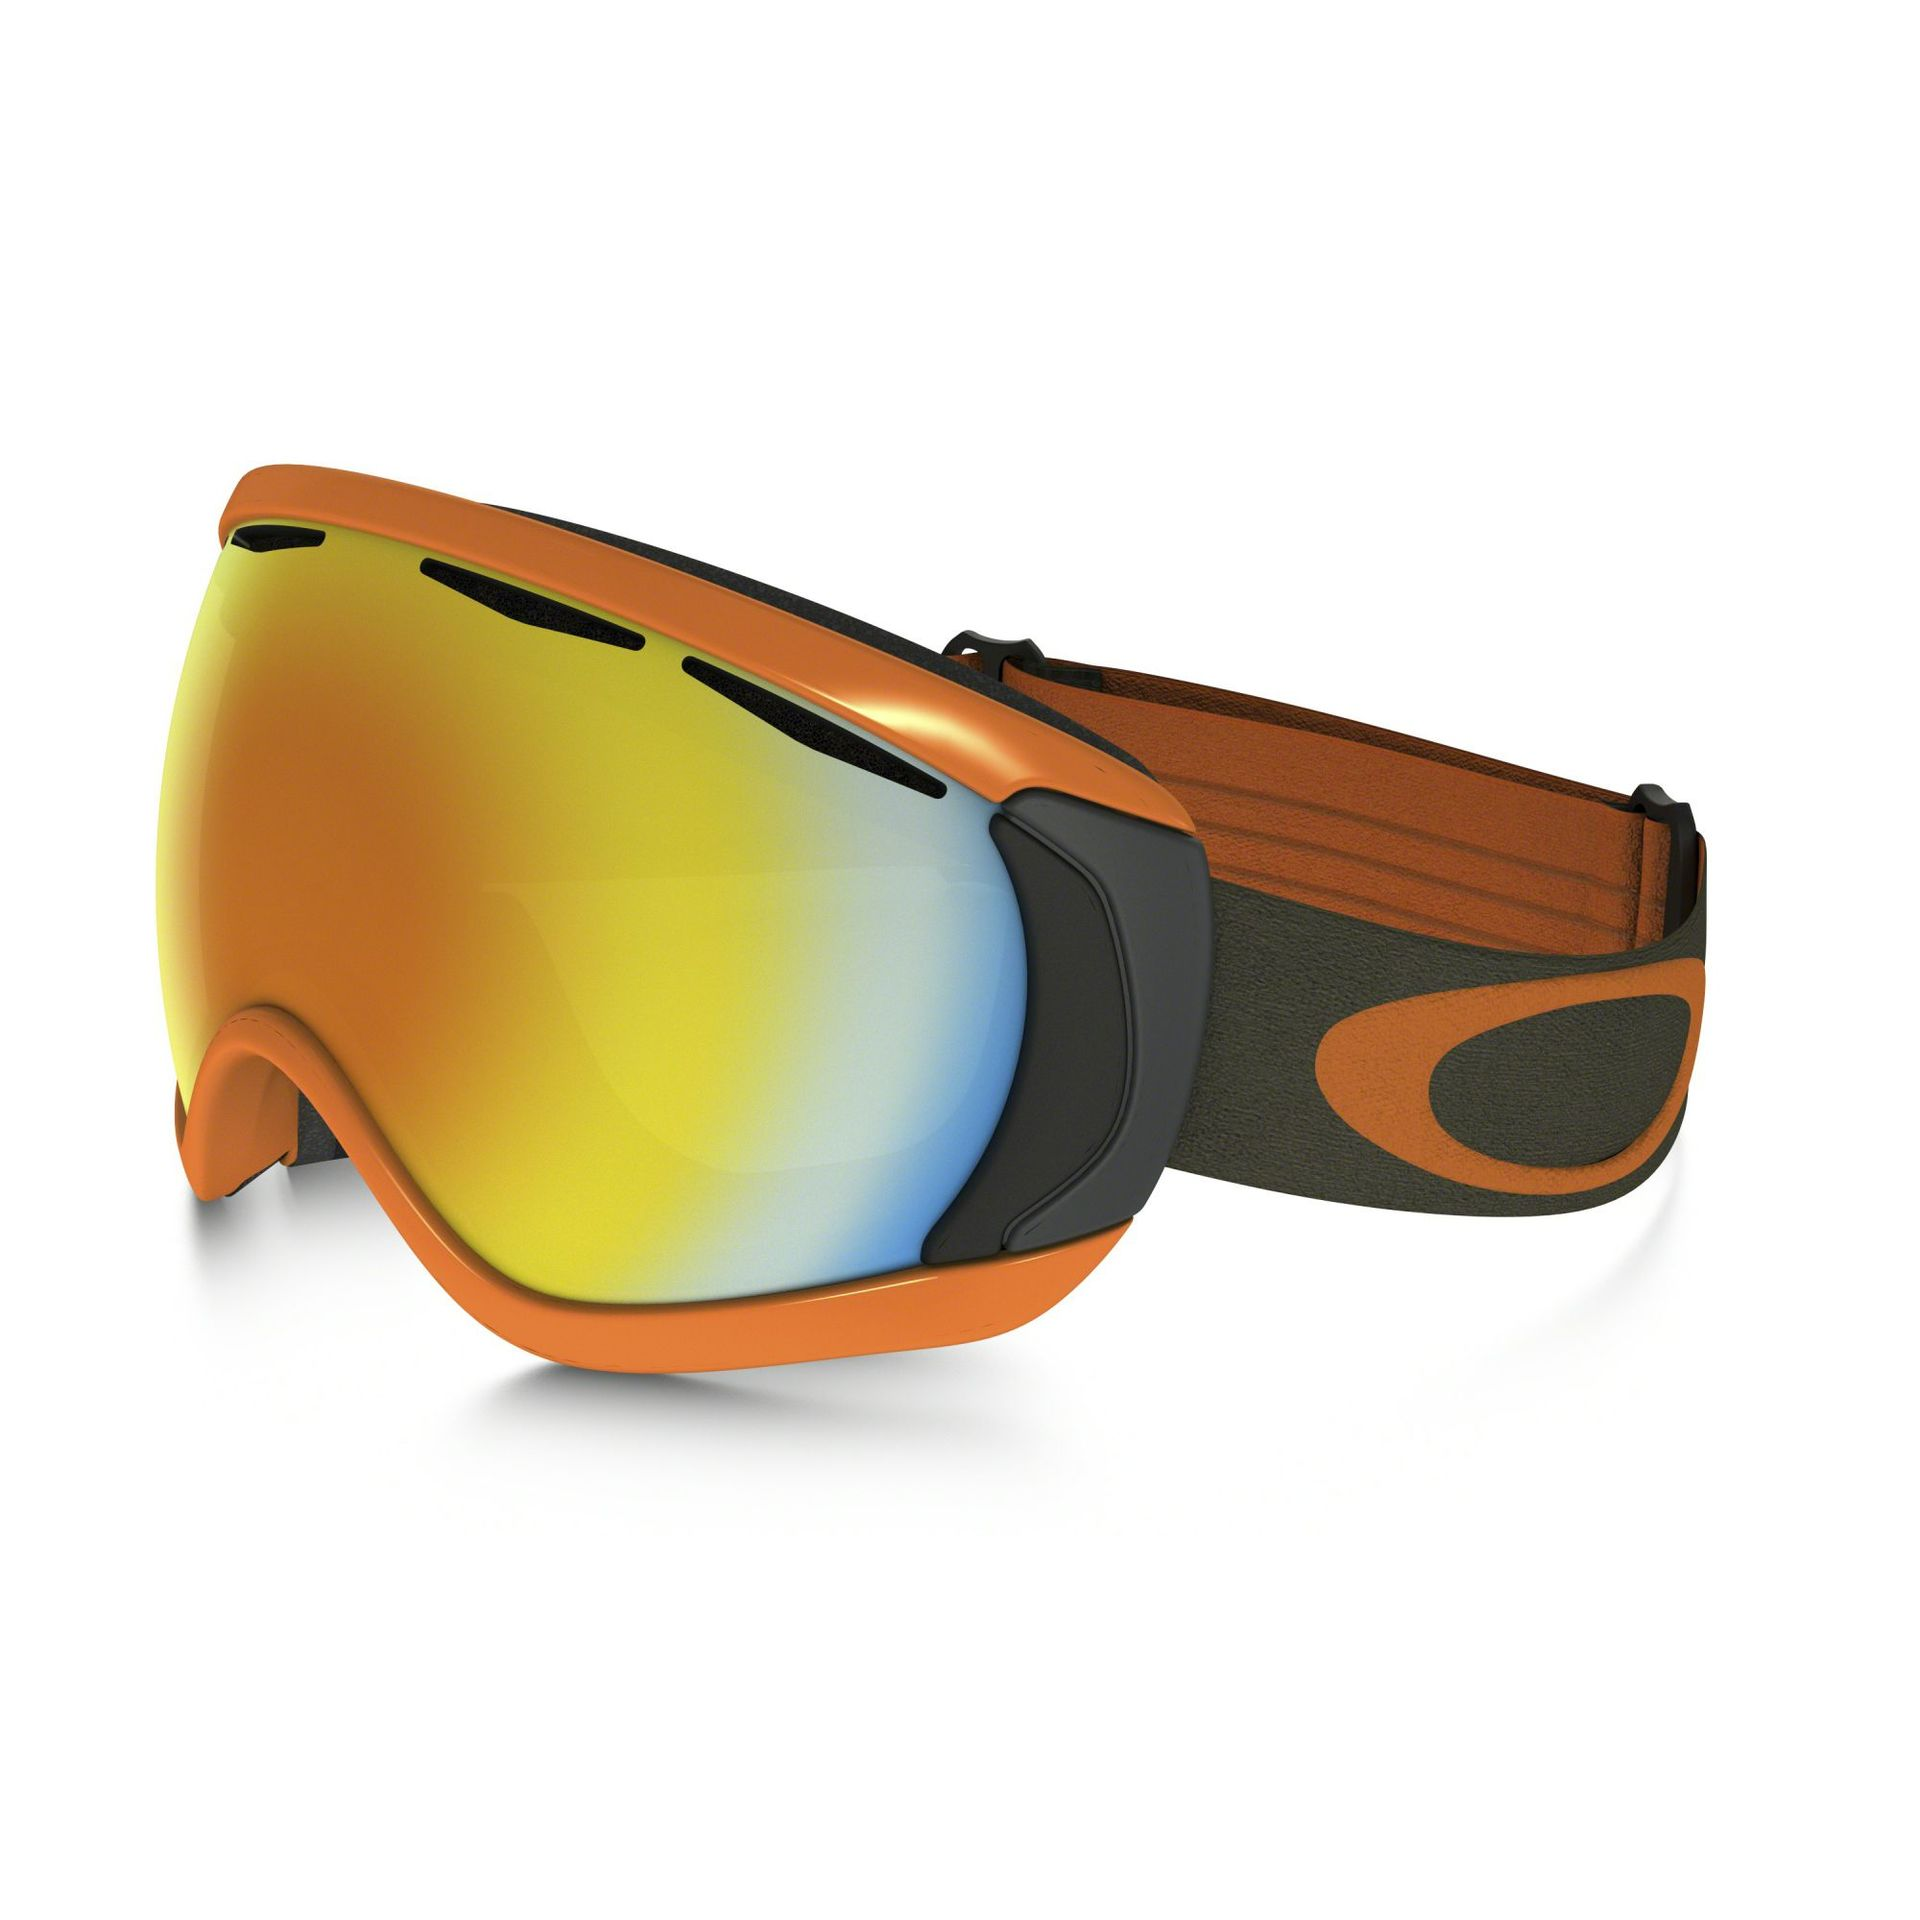 GOGLE OAKLEY CANOPY HERB ORANGE FIRE IRIDIUM